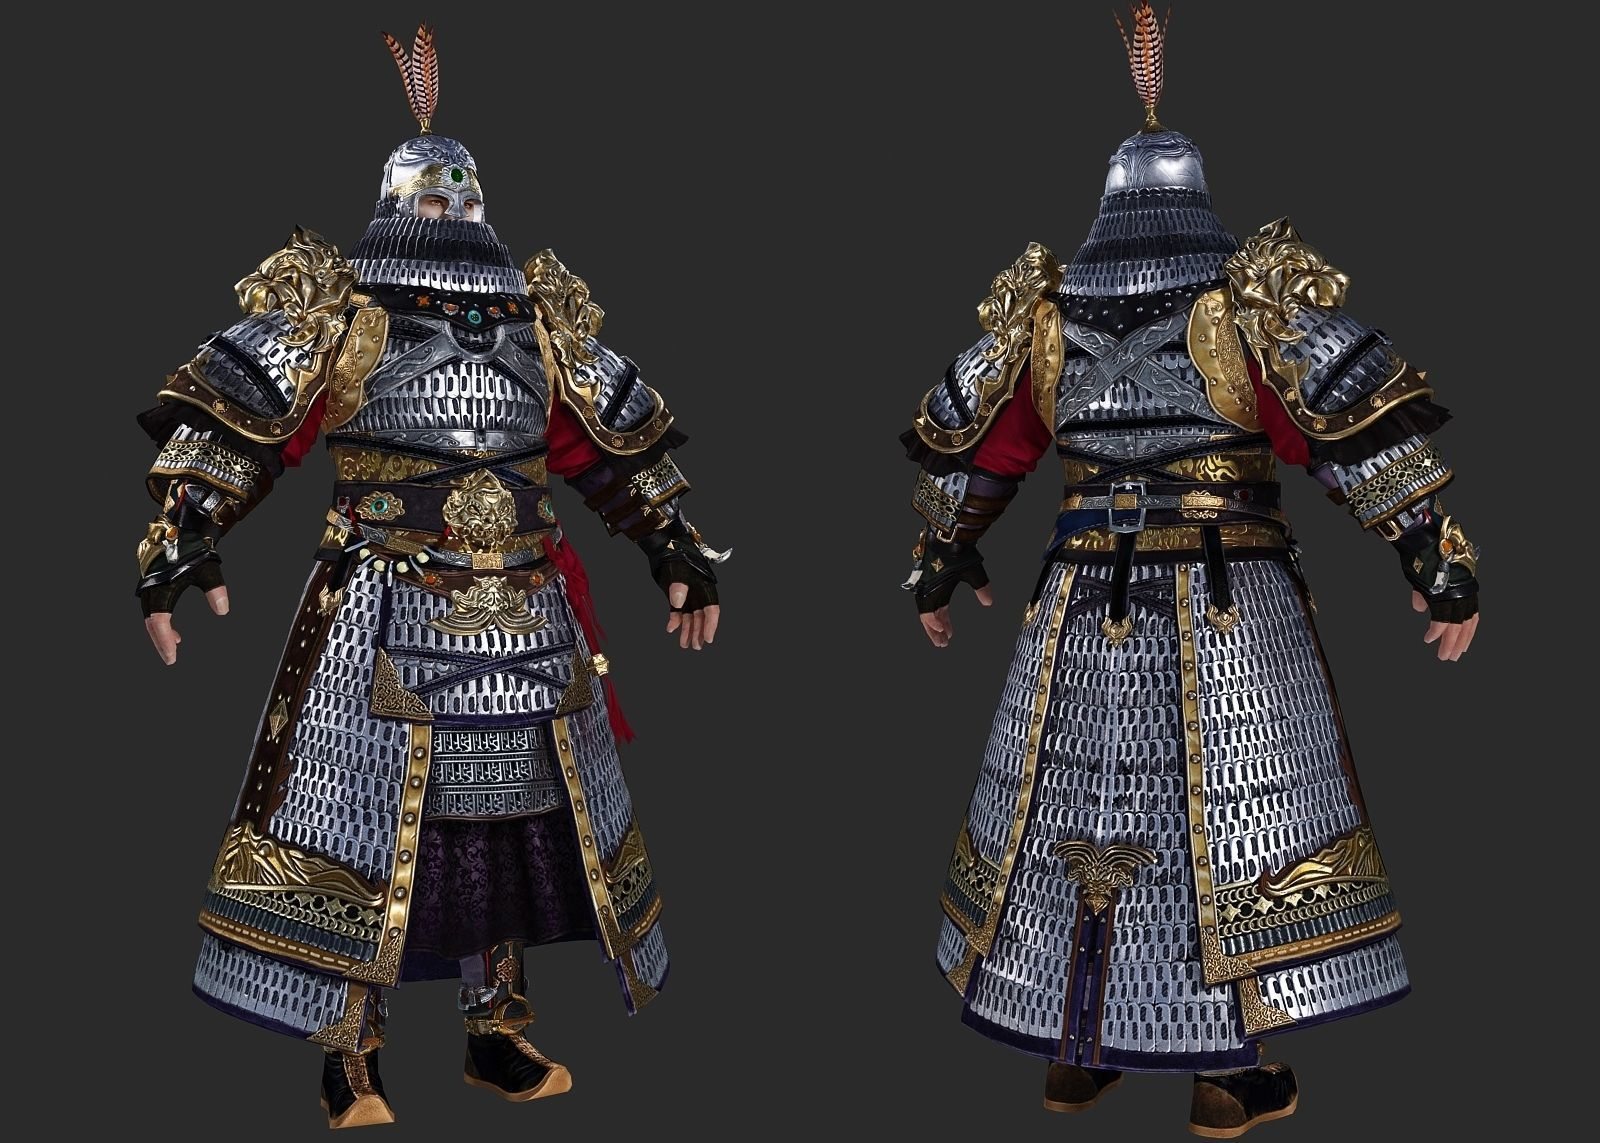 Armor of heavy cavalry in ancient China Iron float general